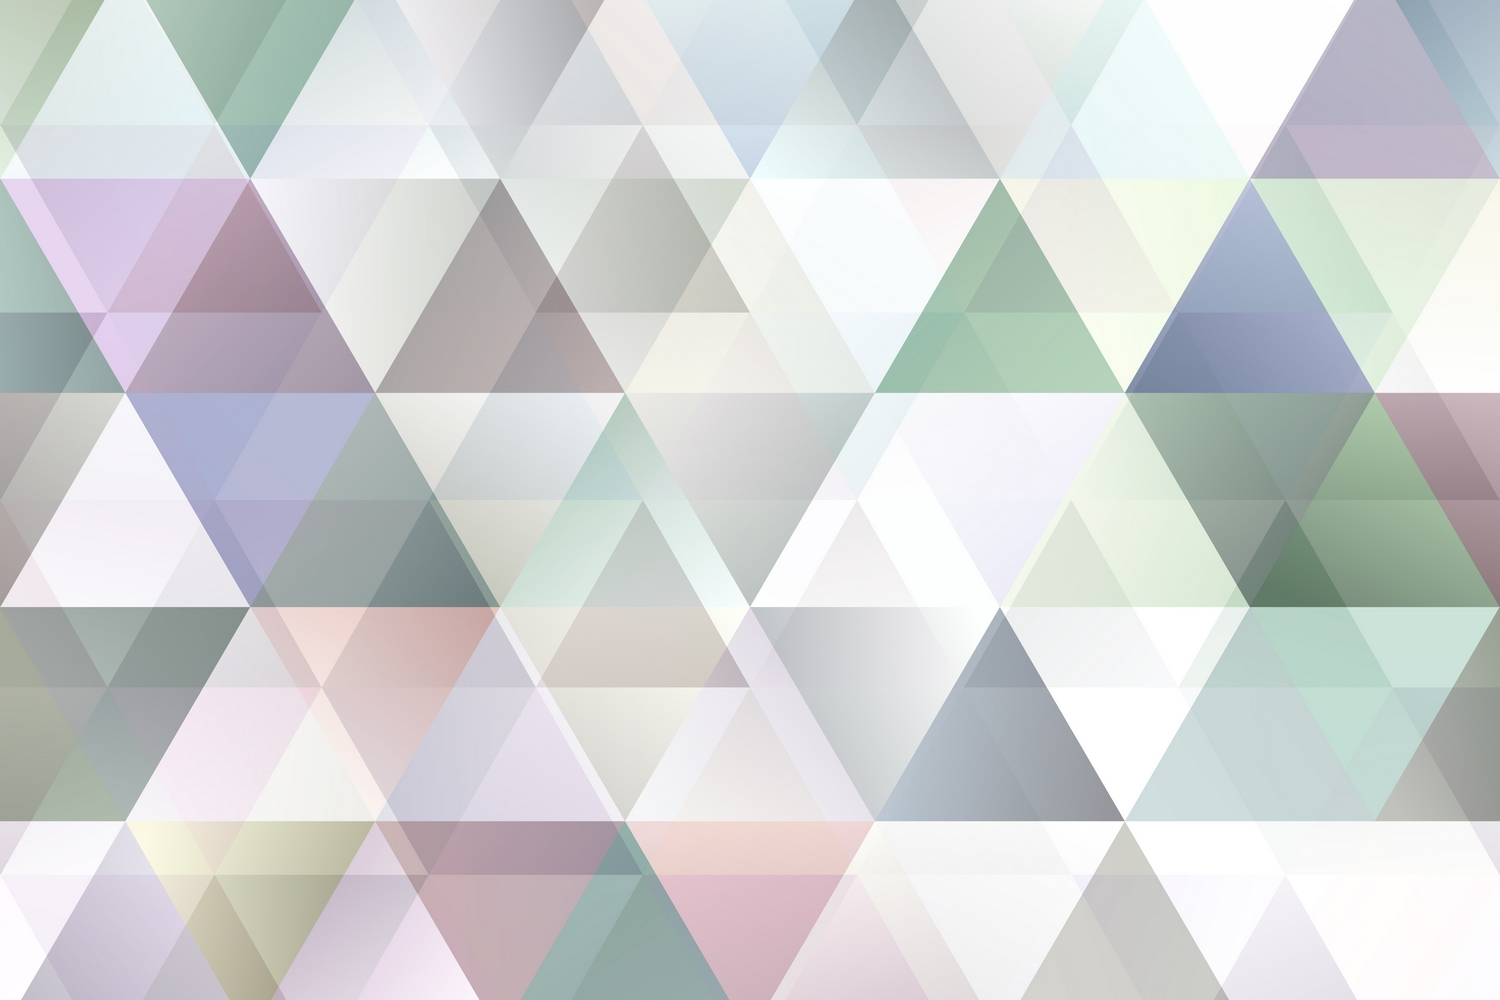 24 Gradient Polygon Backgrounds AI, EPS, JPG 5000x5000 example image 3